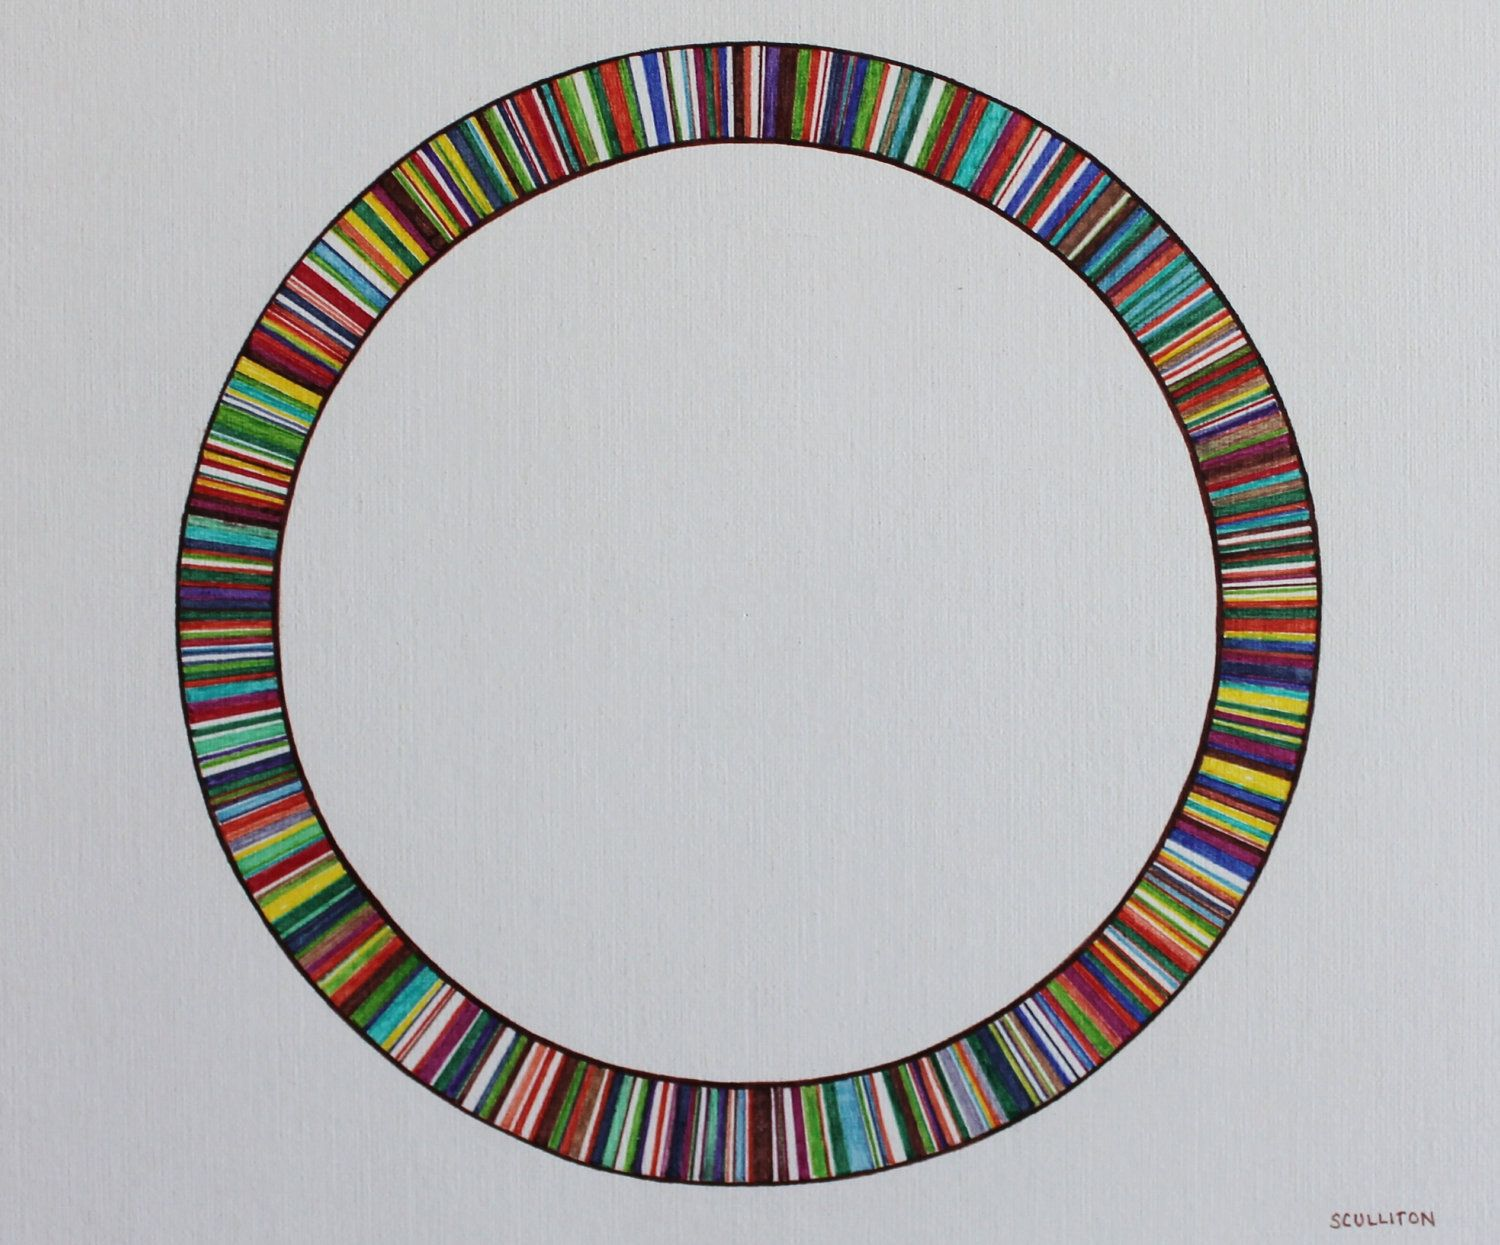 This colorful circle is of circular DNA, inspired by the genome of Haemophilus influenzae which was the first cellular genome to be sequenced, by D. Fleischmann et al. The researchers identified potential protein-coding regions in the H. influenzae genome of which were designated by colored bars in the circular genome.